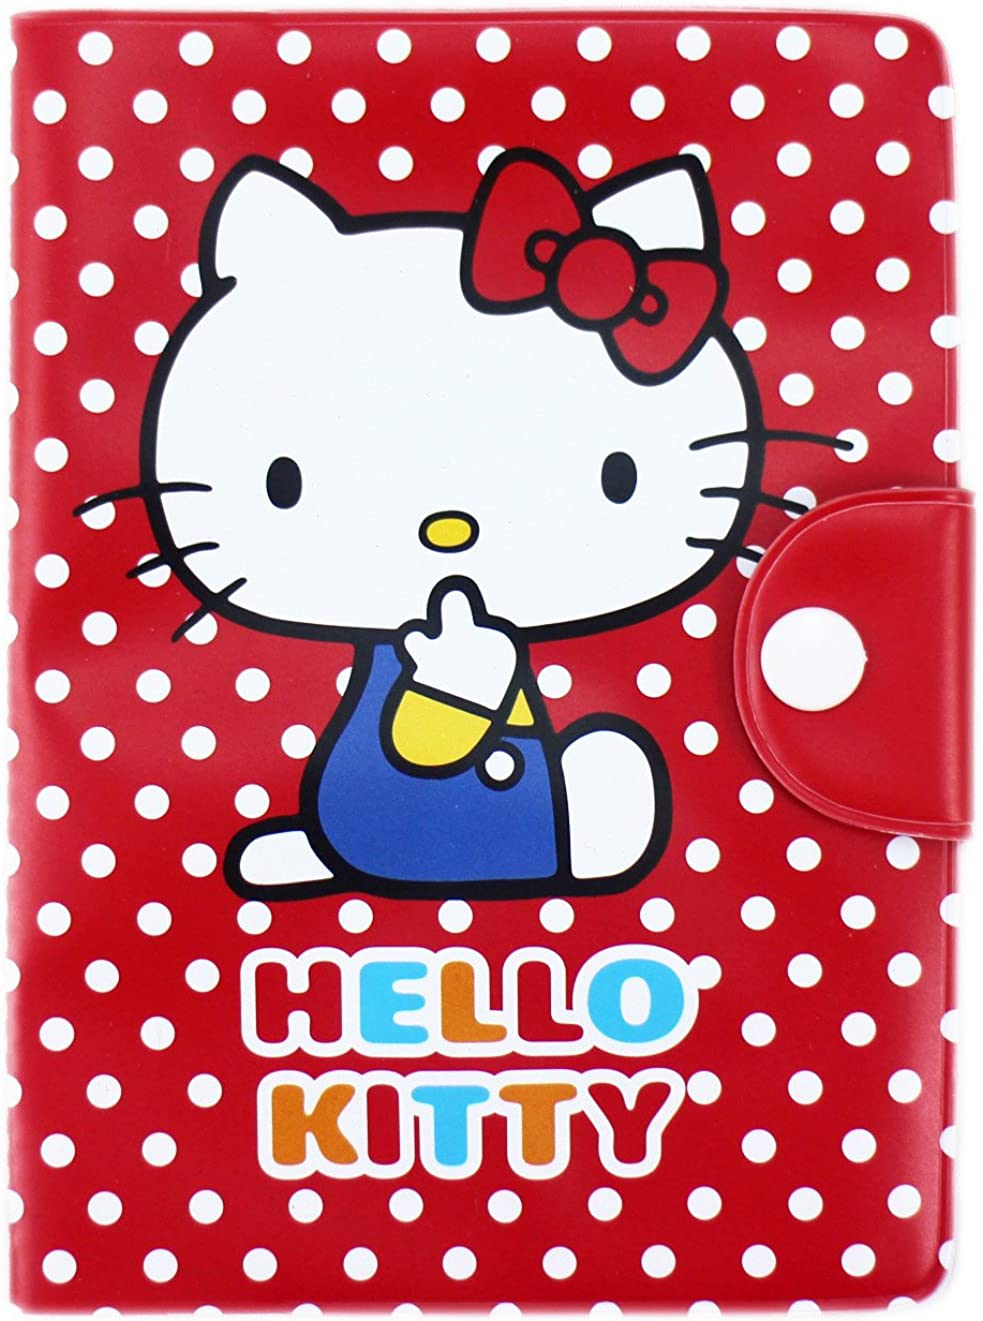 Hello Kitty Red and White Polka Dot Adorable Passport Cover//Holder